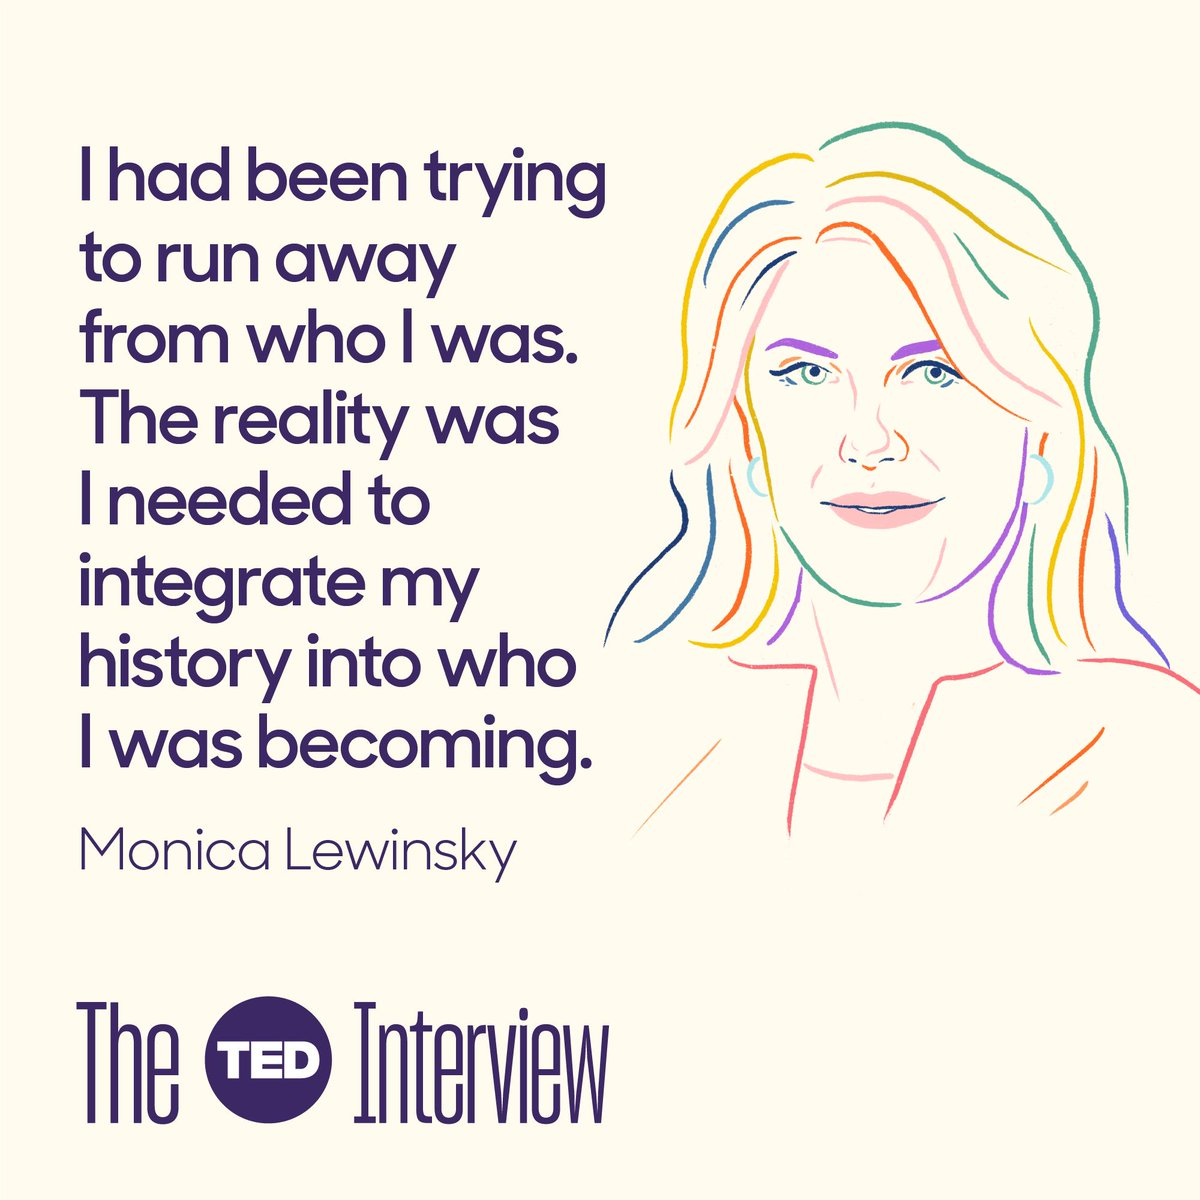 So, I got to sit down for an extended conversation with @MonicaLewinsky in the latest episode of #TheTEDInterview. I was moved by what she shared with me...  https://bit.ly/2JRTk5w